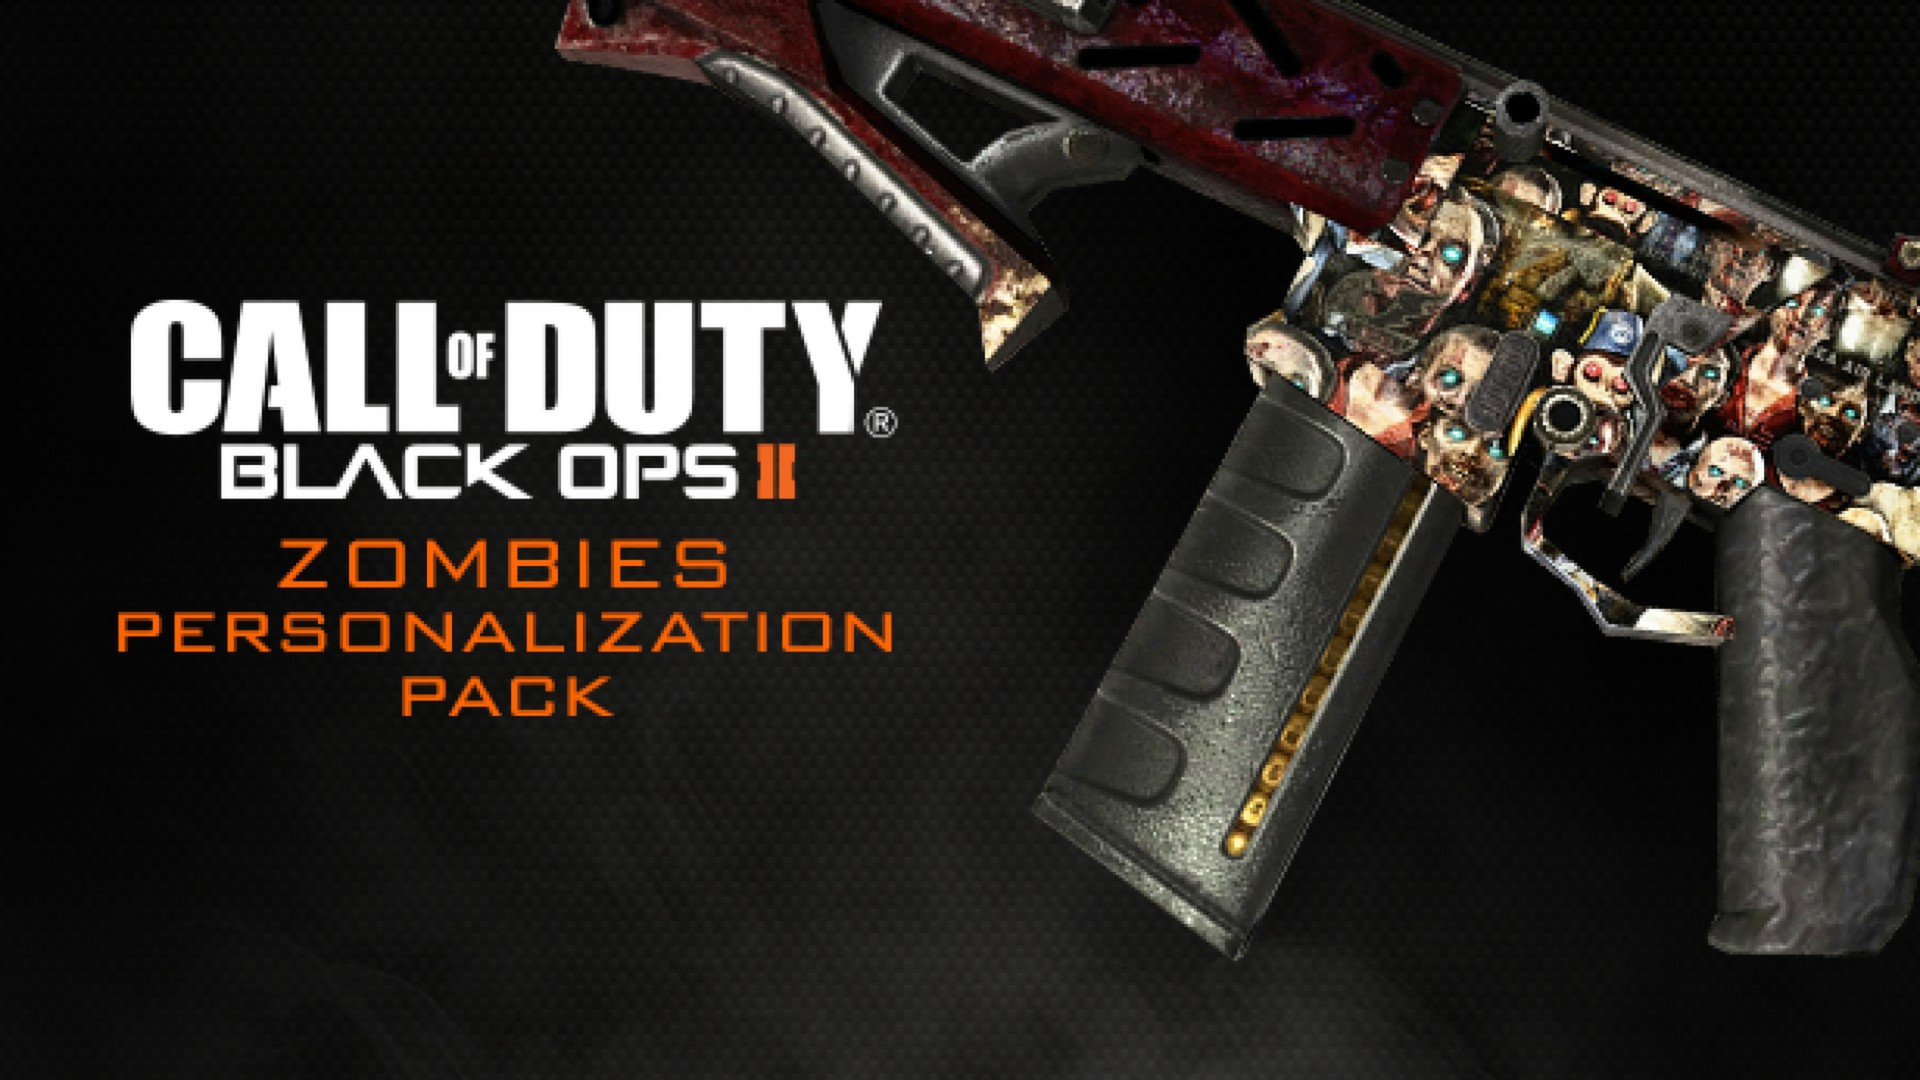 Call Of Duty Black Ops Ii Zombies Personalization Pack On Steam